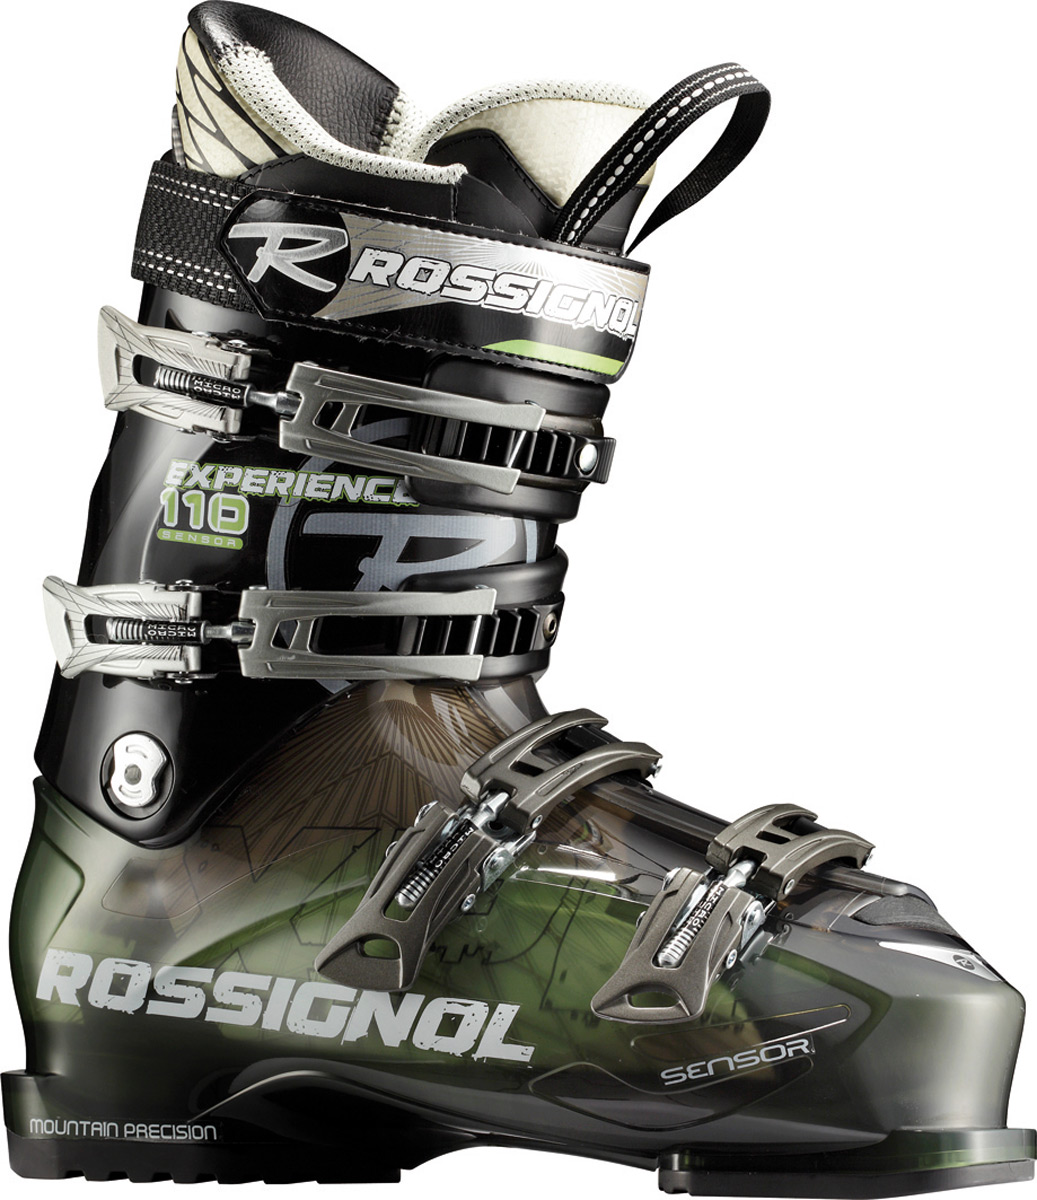 "Ski Sensor boots have a 104mm ""wide"" fit based on the 100mm sensor. Sensor shells feature a 4mm wider ""v"" shape in he forefoot, preserving the contoured fit, strong heel cup and asymmetrical toe box. Sensor fit liners provide an open instep and accommodating ankle area, increasing comfort, performance and warmth. Available in 110 to 70 flex ranges, sensor boots are perfect for ntermediate to novice skiers who want confident all- mountain performance and a generous fit.Key Features of the Rossignol Experience Sensor 110 Ski Boots: Sensor fit liner: focuses on solving all of the common problem fit areas Sensor fit simply fits more feet better Easy entry: notches in the plastic along the instep allow for easy entry and exit without compromising four buckle overlap boot performance Neutral stance: delivers more control, better balance and minimizes fatigue Neutral stance includes a laterally neutral cuff, 4.5 degree ramp angle and 14 degree forward lean Sensor shell: uses a boot board that connects the three key receptor points to the boot sole The direct link with the stiffer bi-injected lower shell produces enhanced power, control and feel. Material : polyether Padding : molded pu hard Last : 104 mm Flex : 110 - $279.95"